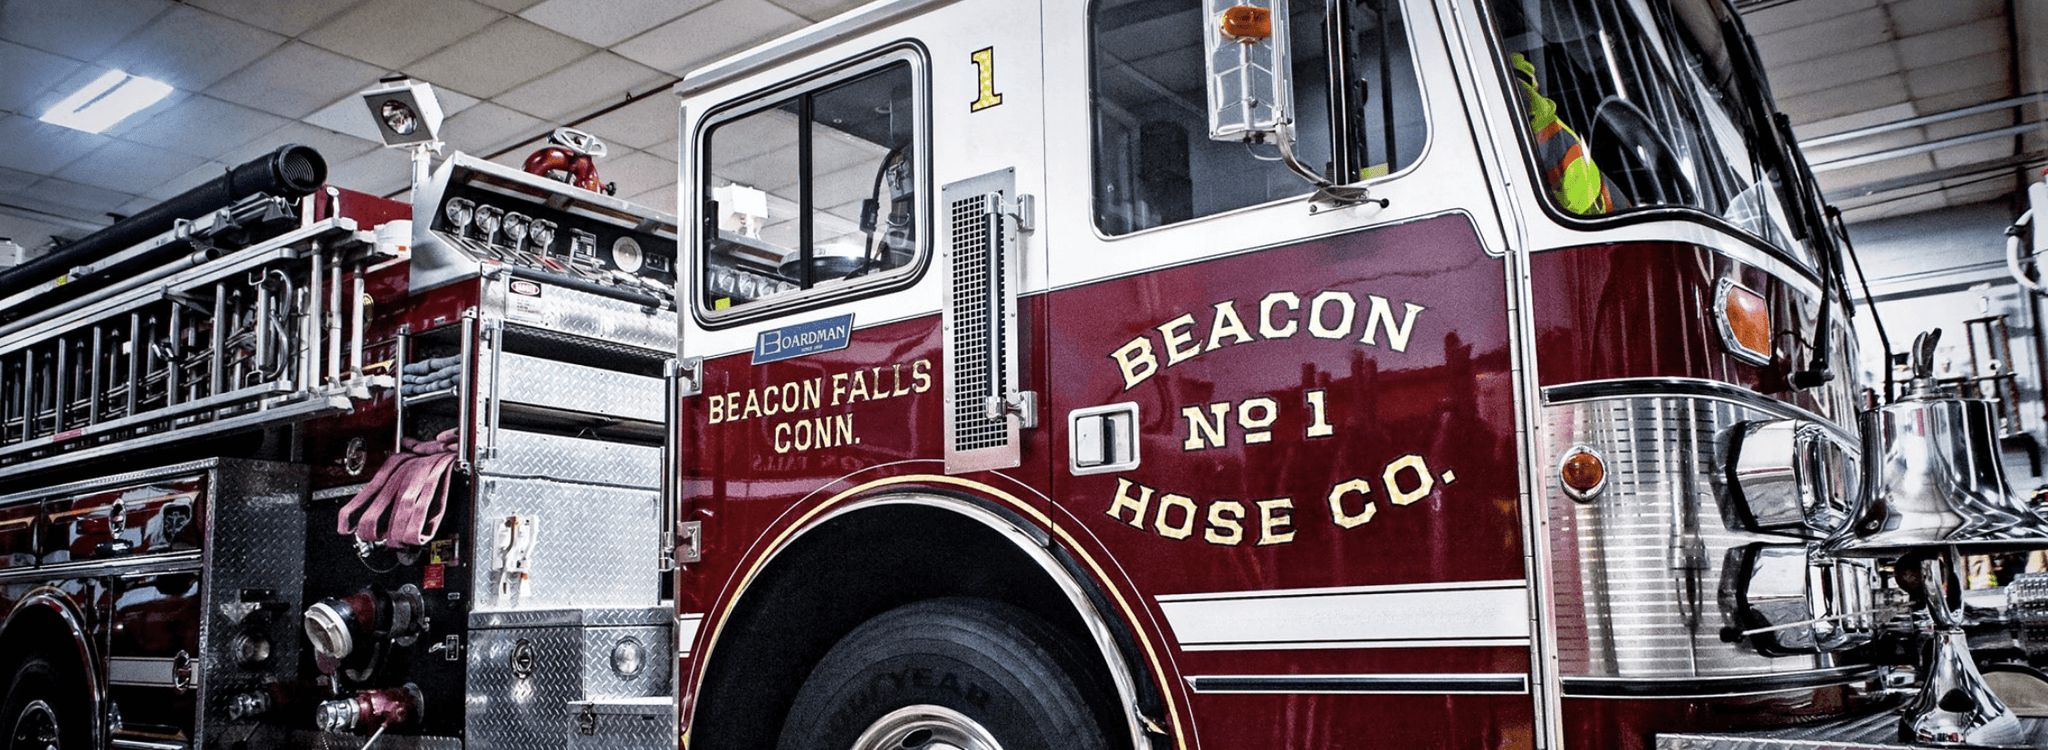 Beacon Hose Co. No. 1 - Beacon Falls CT | New Ultimate Firefighter Recliner Seating